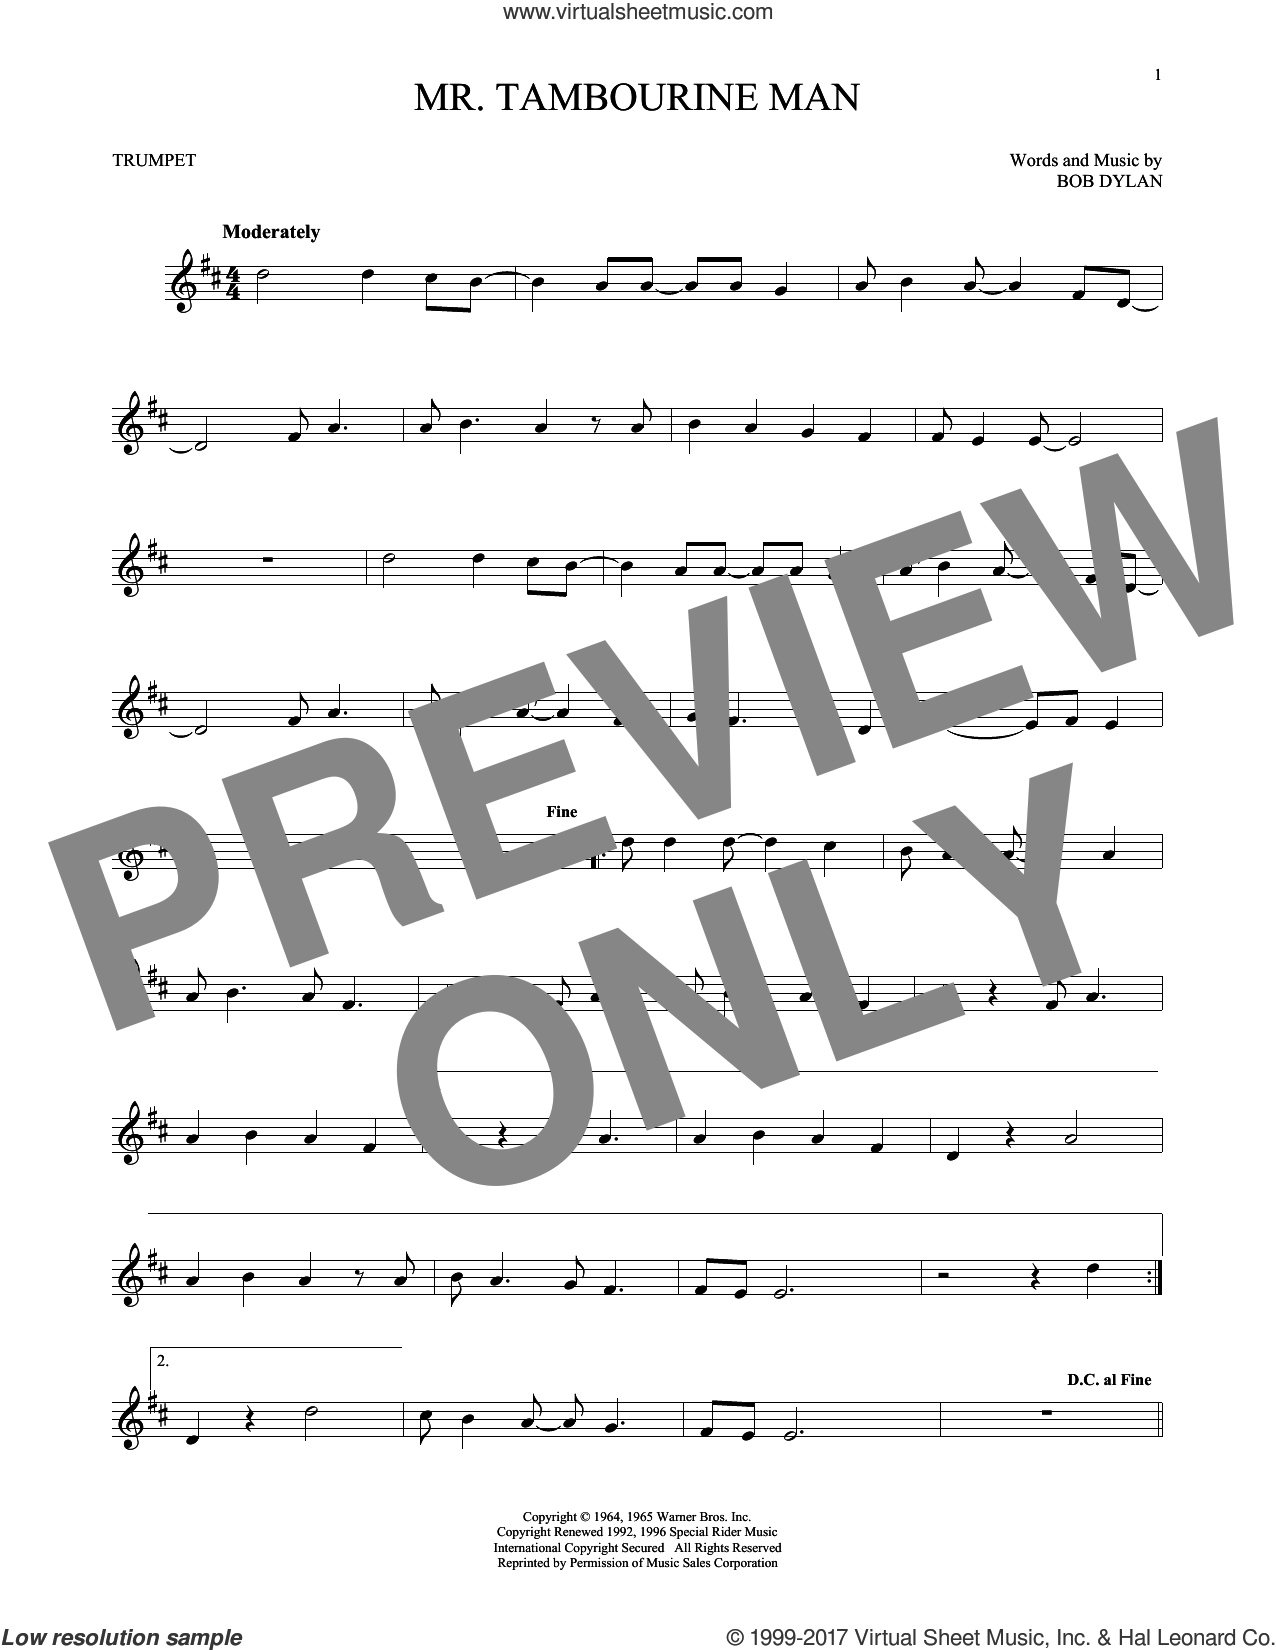 Mr. Tambourine Man sheet music for trumpet solo by Bob Dylan, intermediate skill level